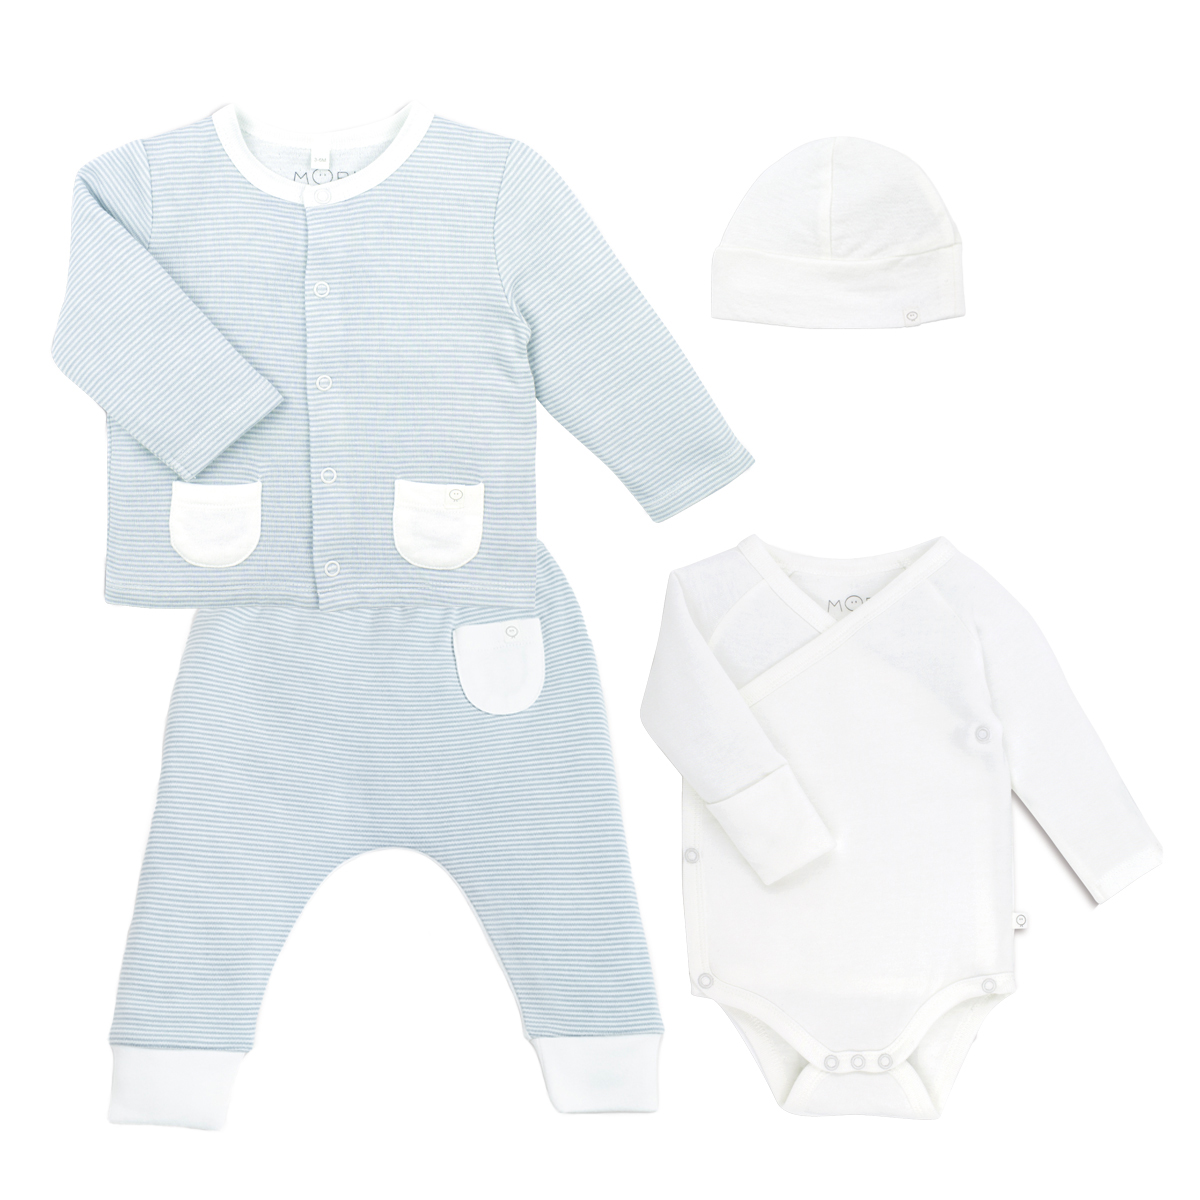 Mori organic my first outfit layette